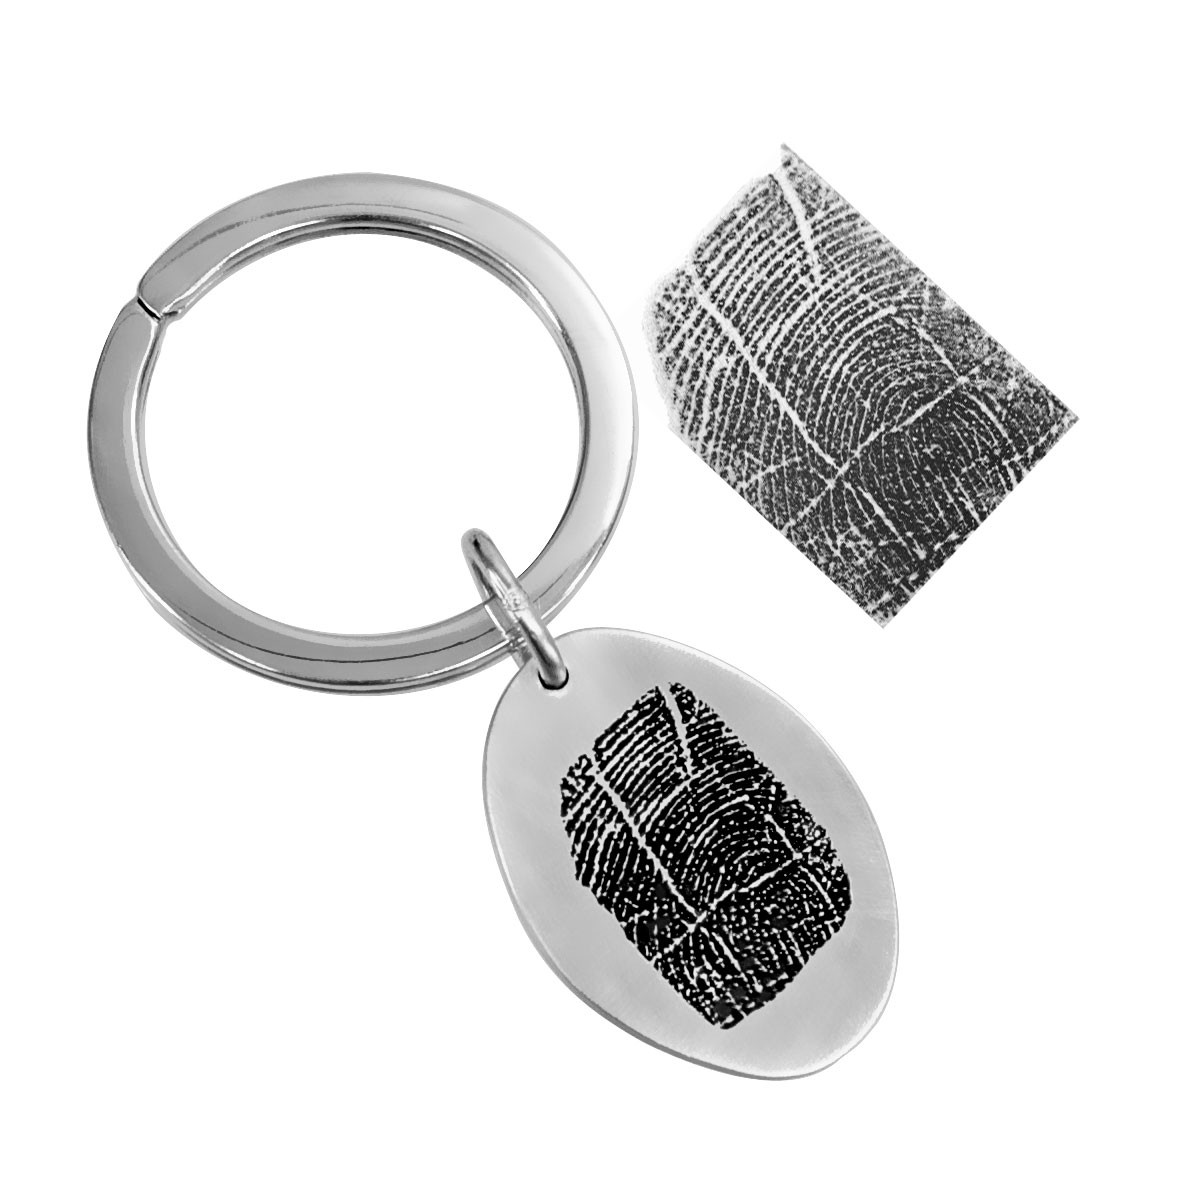 fingerprint key ring memorial in sterling silver on a white background. shown with the original fingerprint